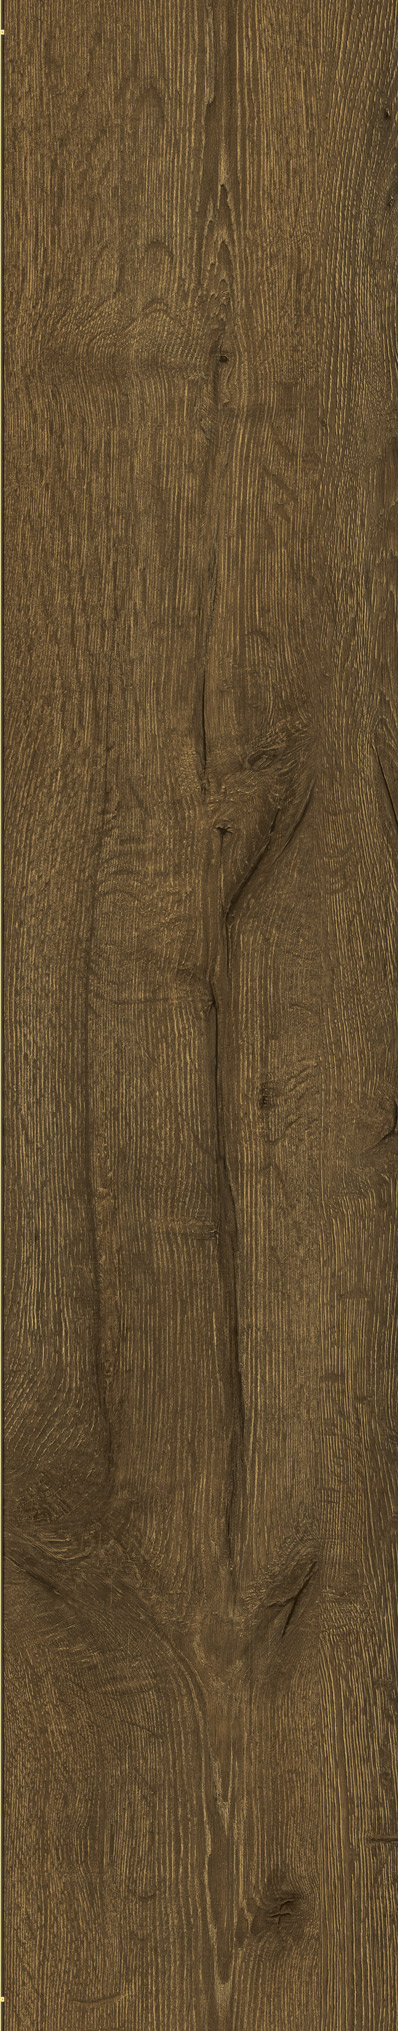 Lamella Clix vinyylilankku - 40155 Kingston Oak Brown